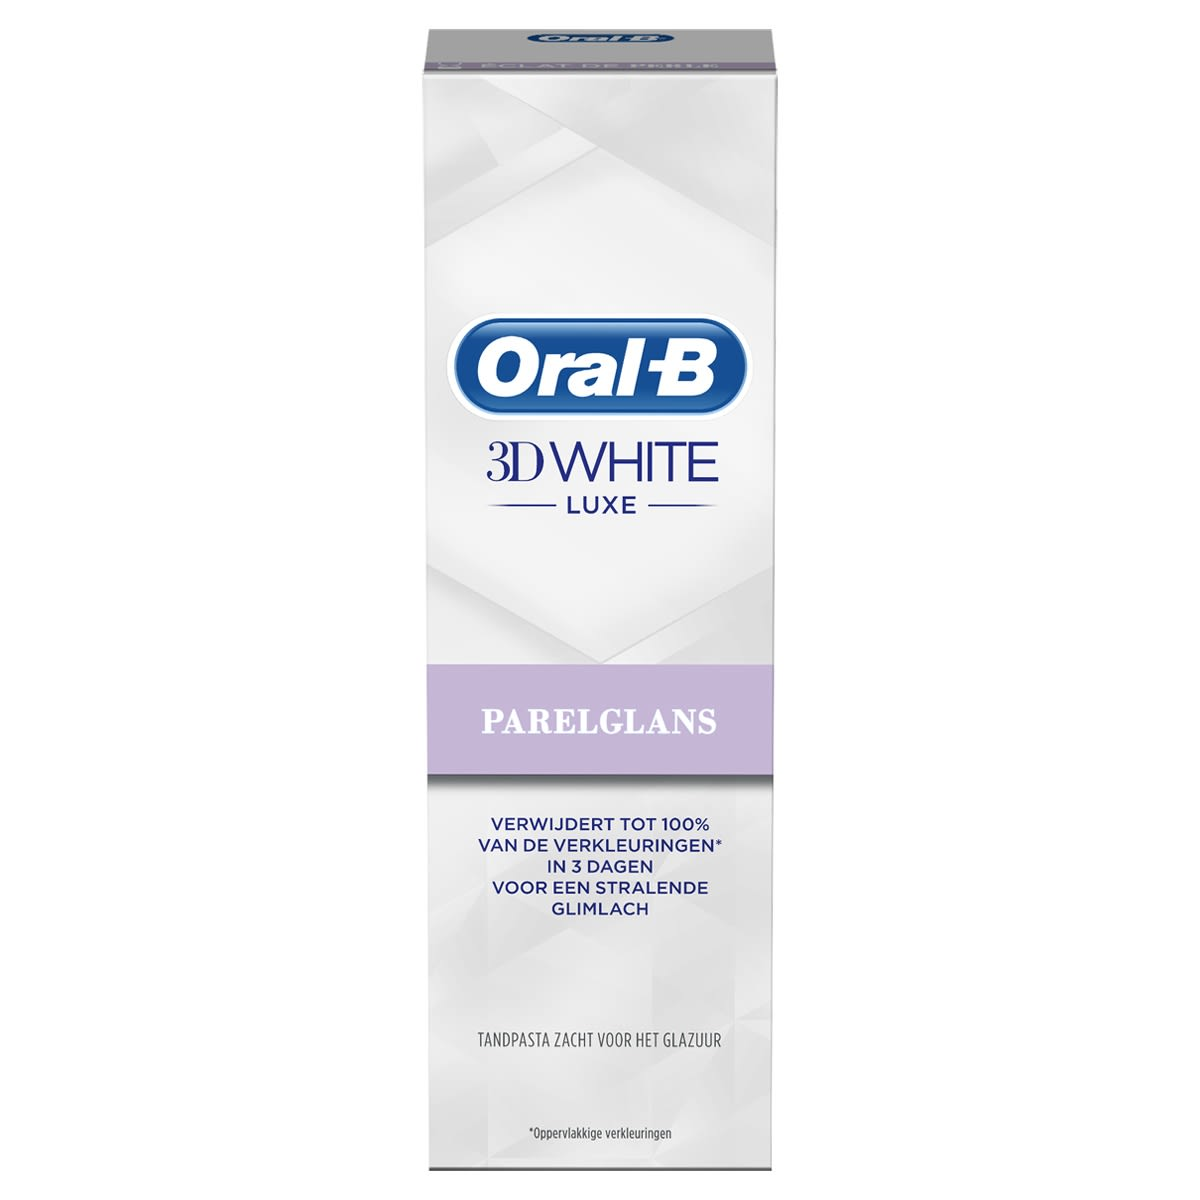 Oral-B 3D White Luxe Parelglans Tandpasta 75ml